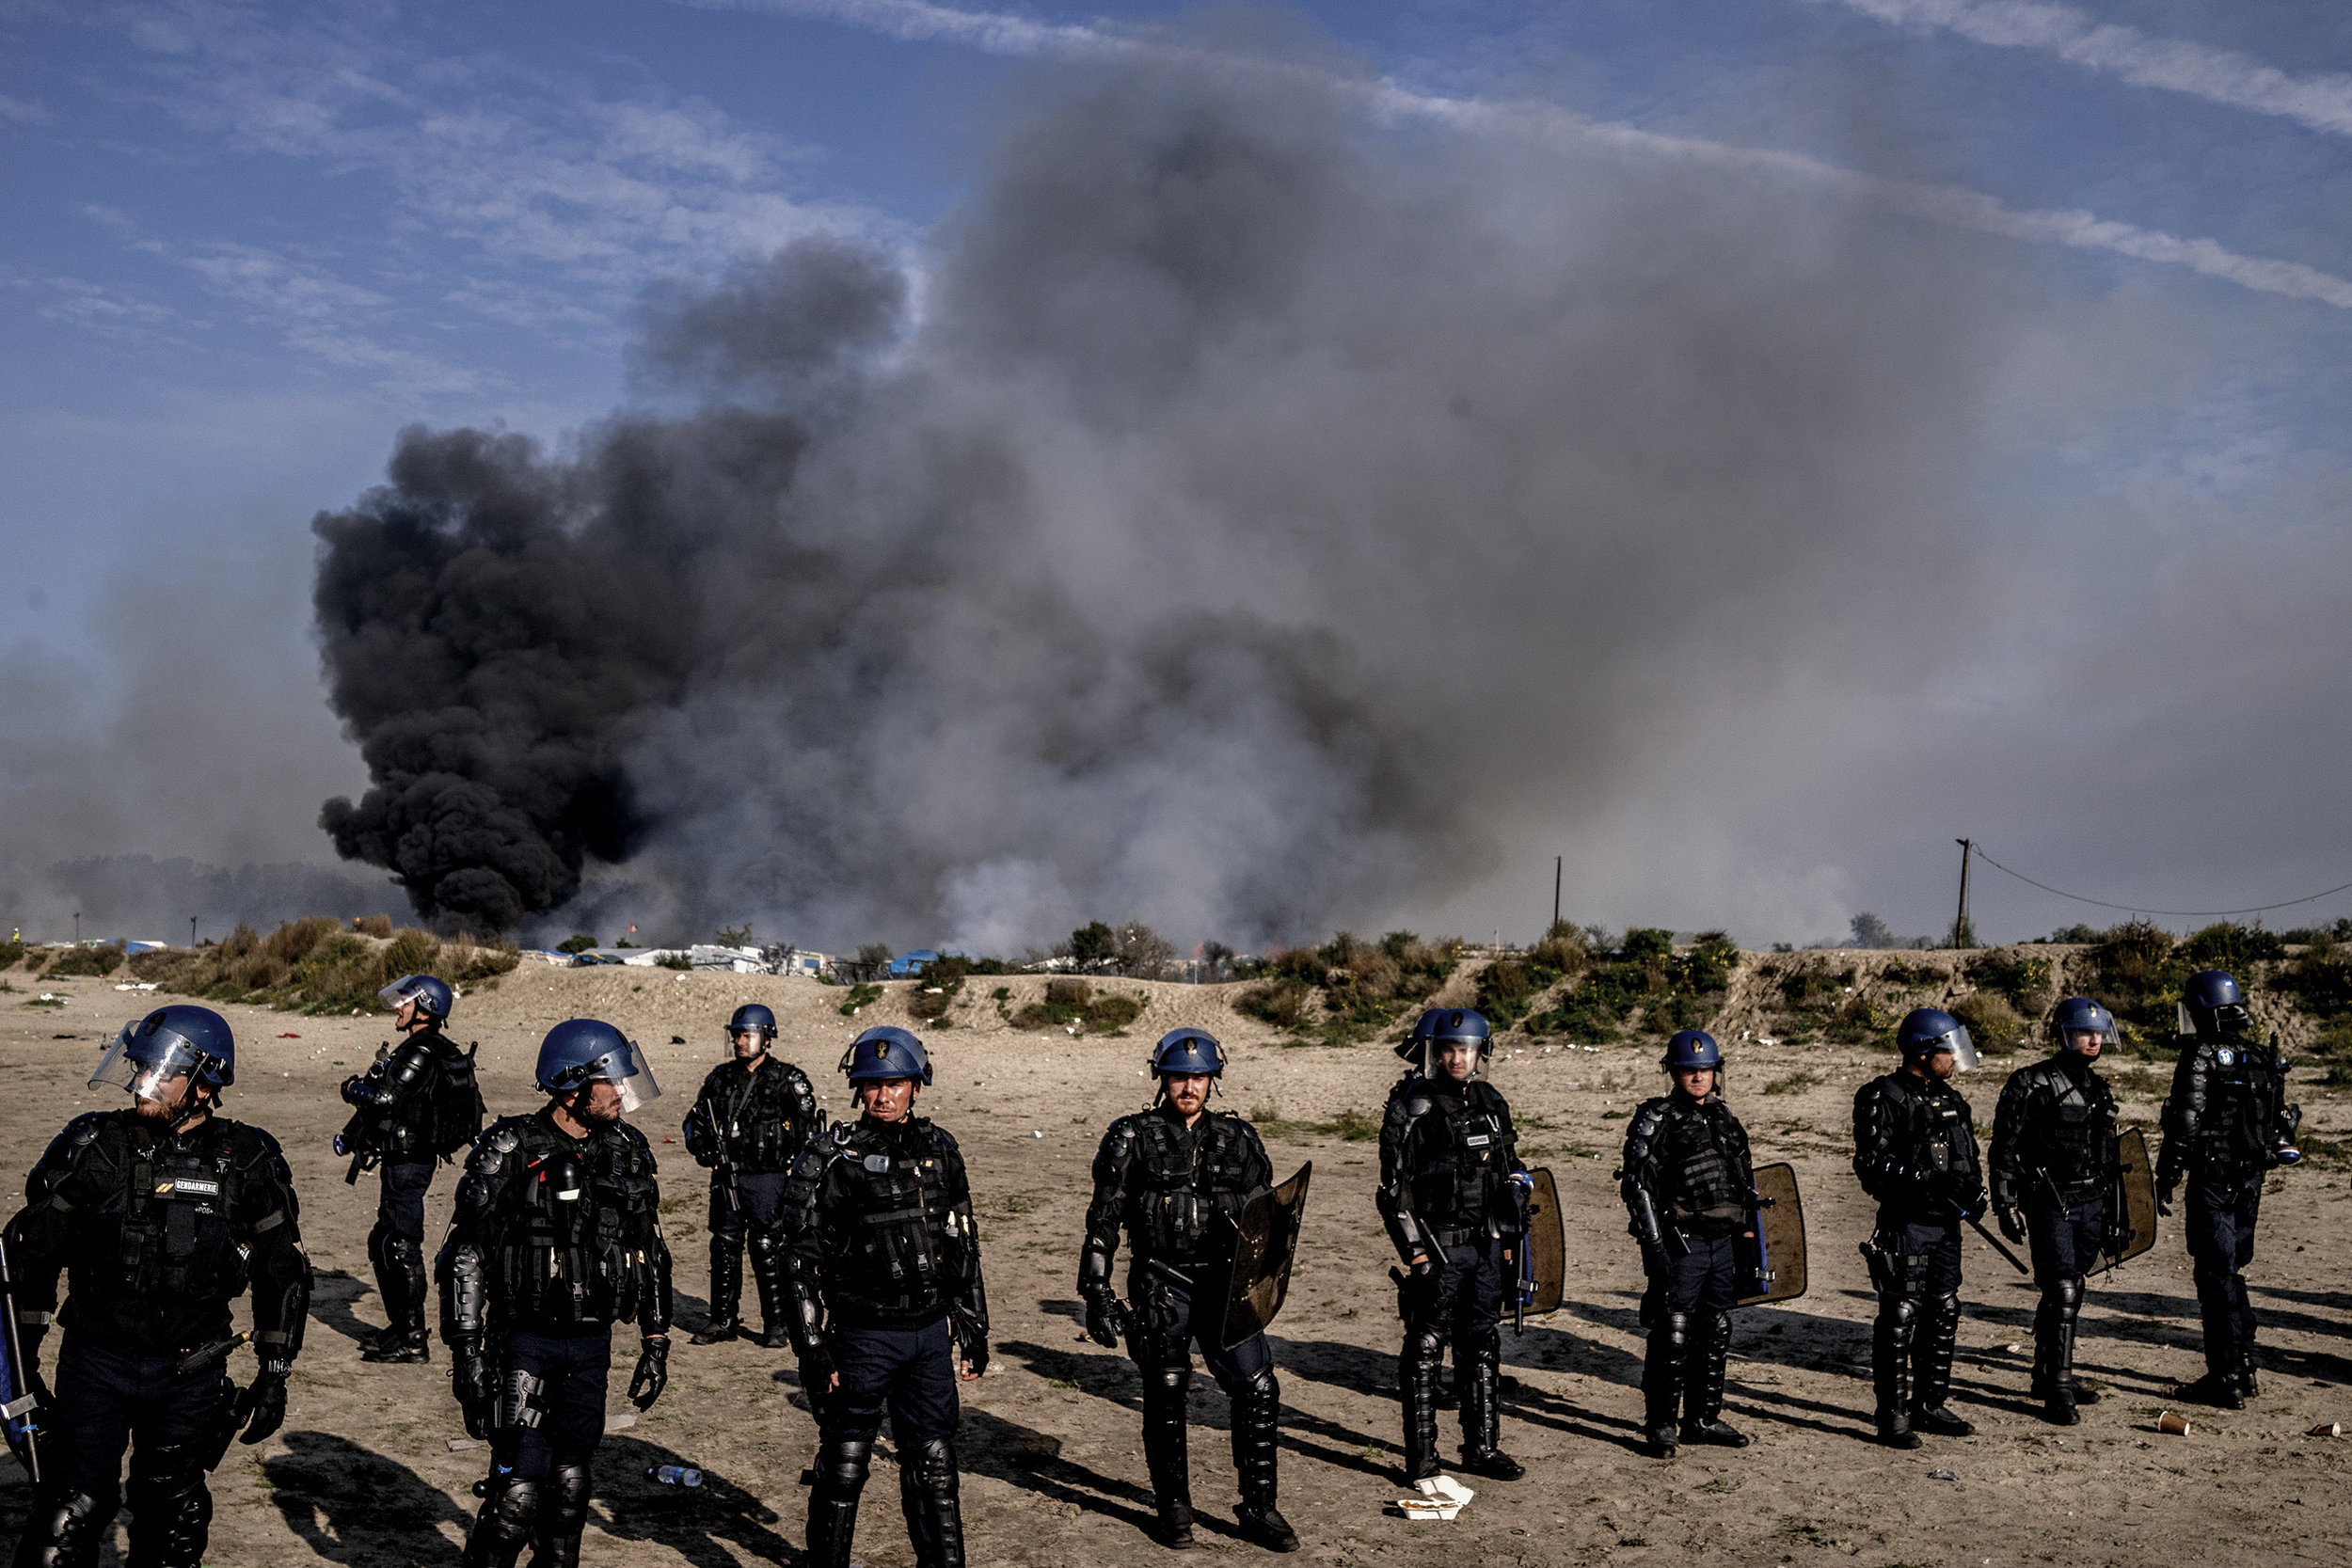 26th October 2016, The Jungle of Calais in France is in huge fire. French police cordon the entrance of the jungle of calais.